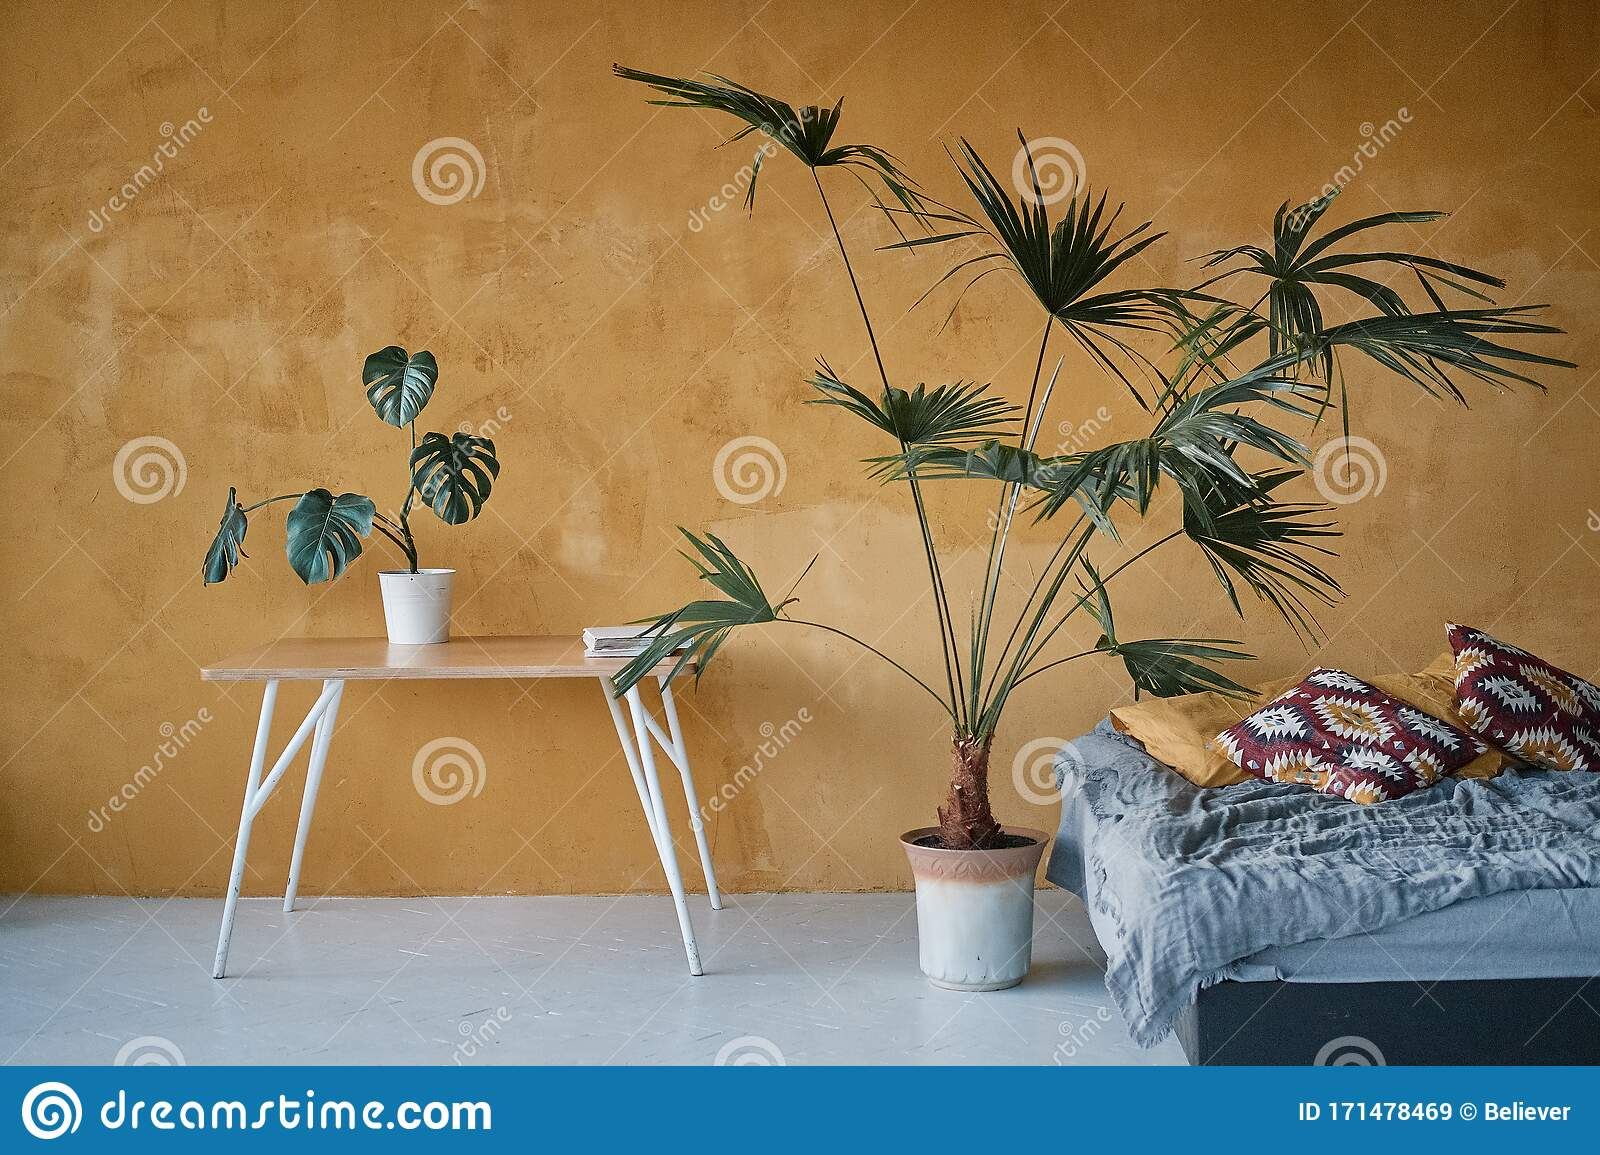 Indoor Plants And A Small Table In The Interior Of A Modern Bedroom The Painted Walls Are Dark Yellow Stock Image Image Of Plant Dark 171478469